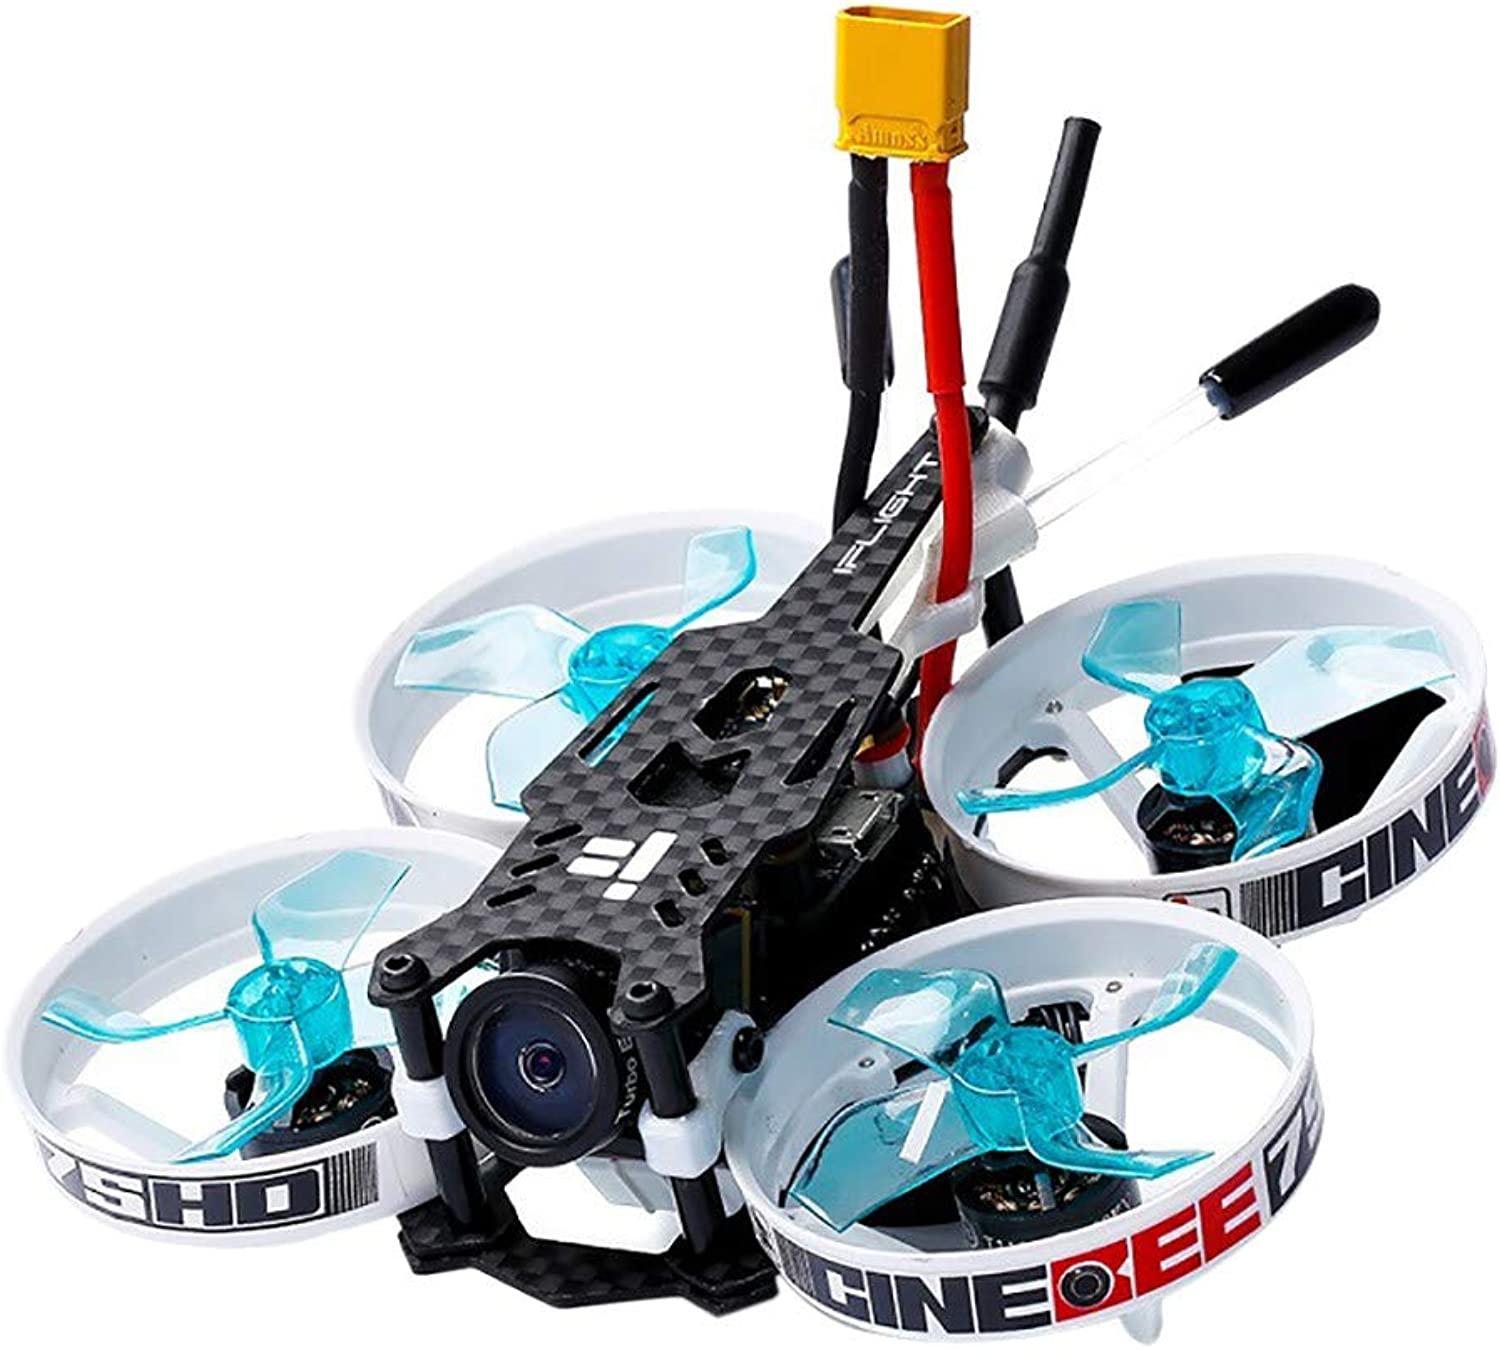 Qomomont iFlight CineBee Mini Racing Drone 75HD Indoor FPV Mini Quadrocopter 75mm mit FS-A8S V2 Pocket Helikopter für Anfnger